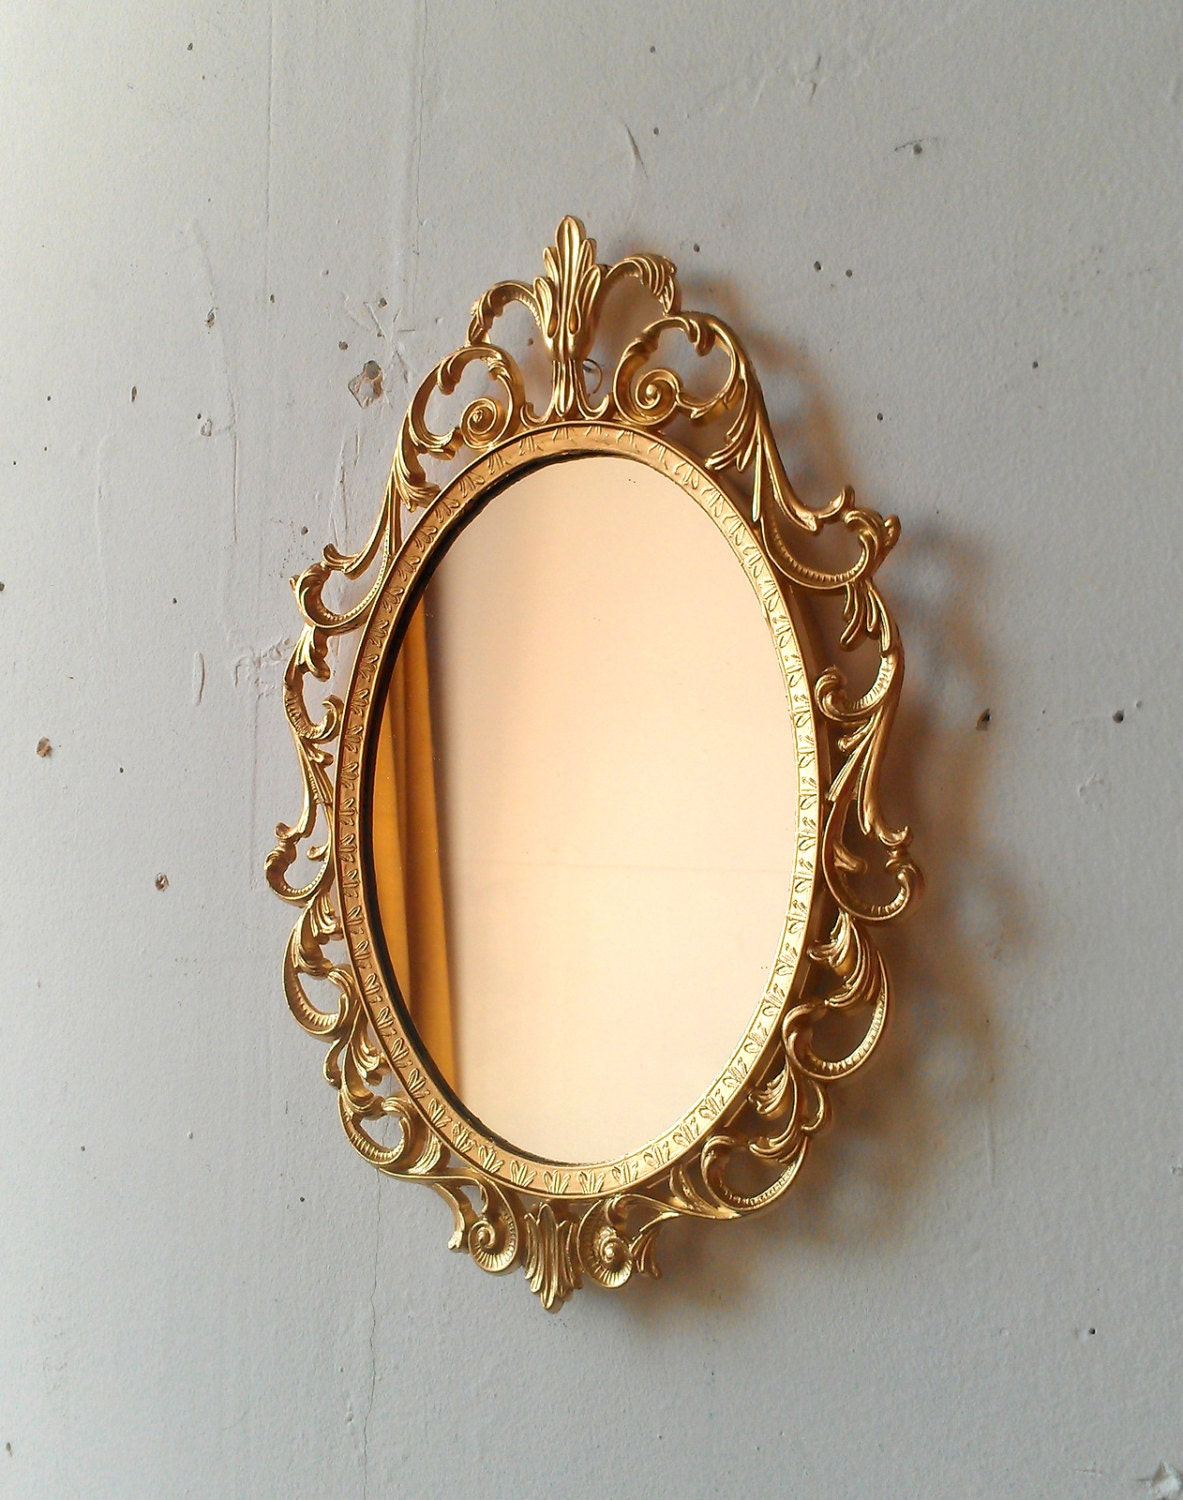 Details about brass photo frame vintage ornate oval frame victorian - Gold Princess Mirror In Ornate Vintage Oval Frame 10 By 7